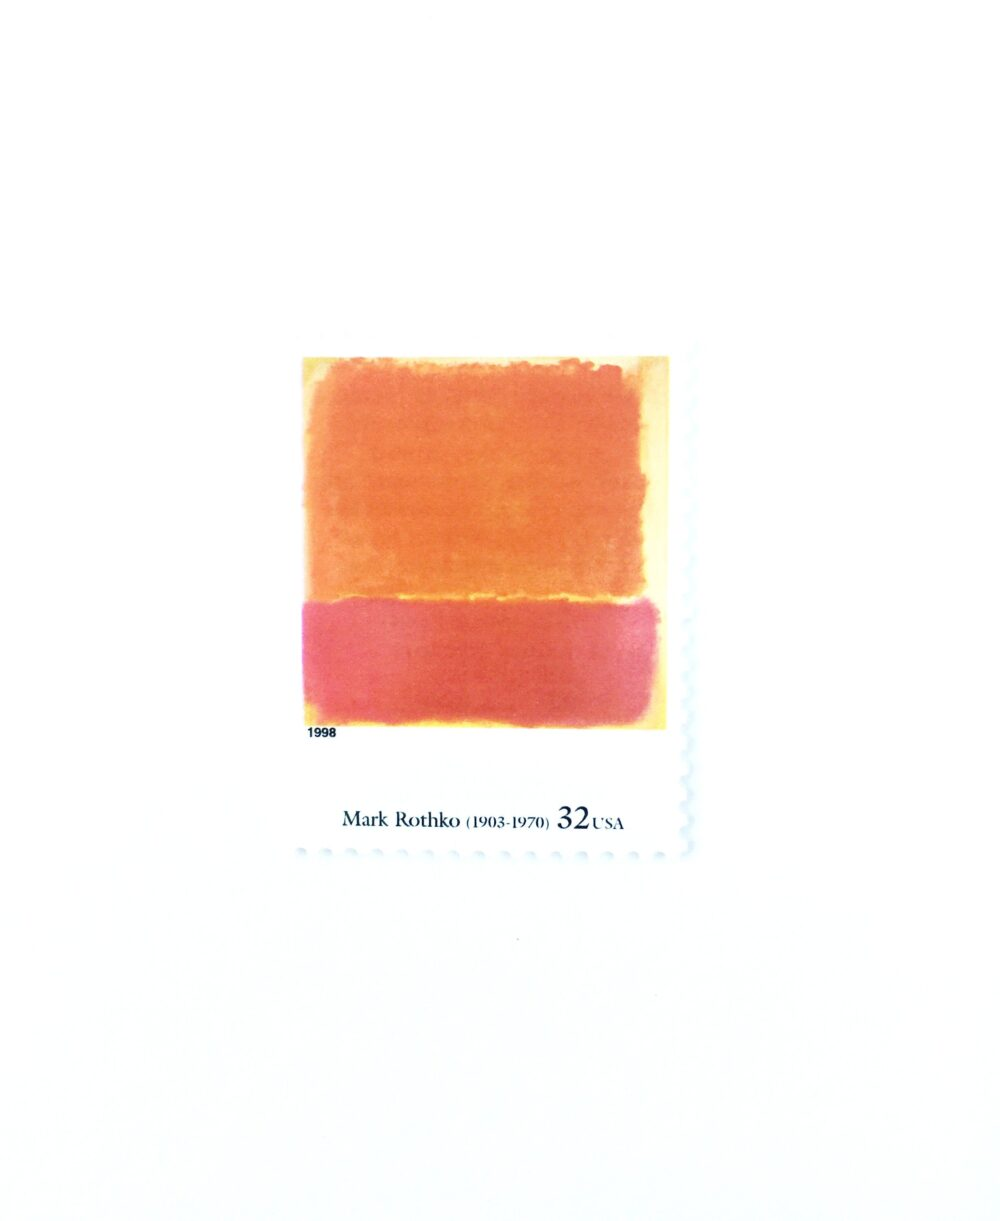 "5 ""No. 12"" By Mark Rothko Postage Stamps // Unused 32 Cent Stamp Four Centuries Of American Art Wedding Postage Modern"